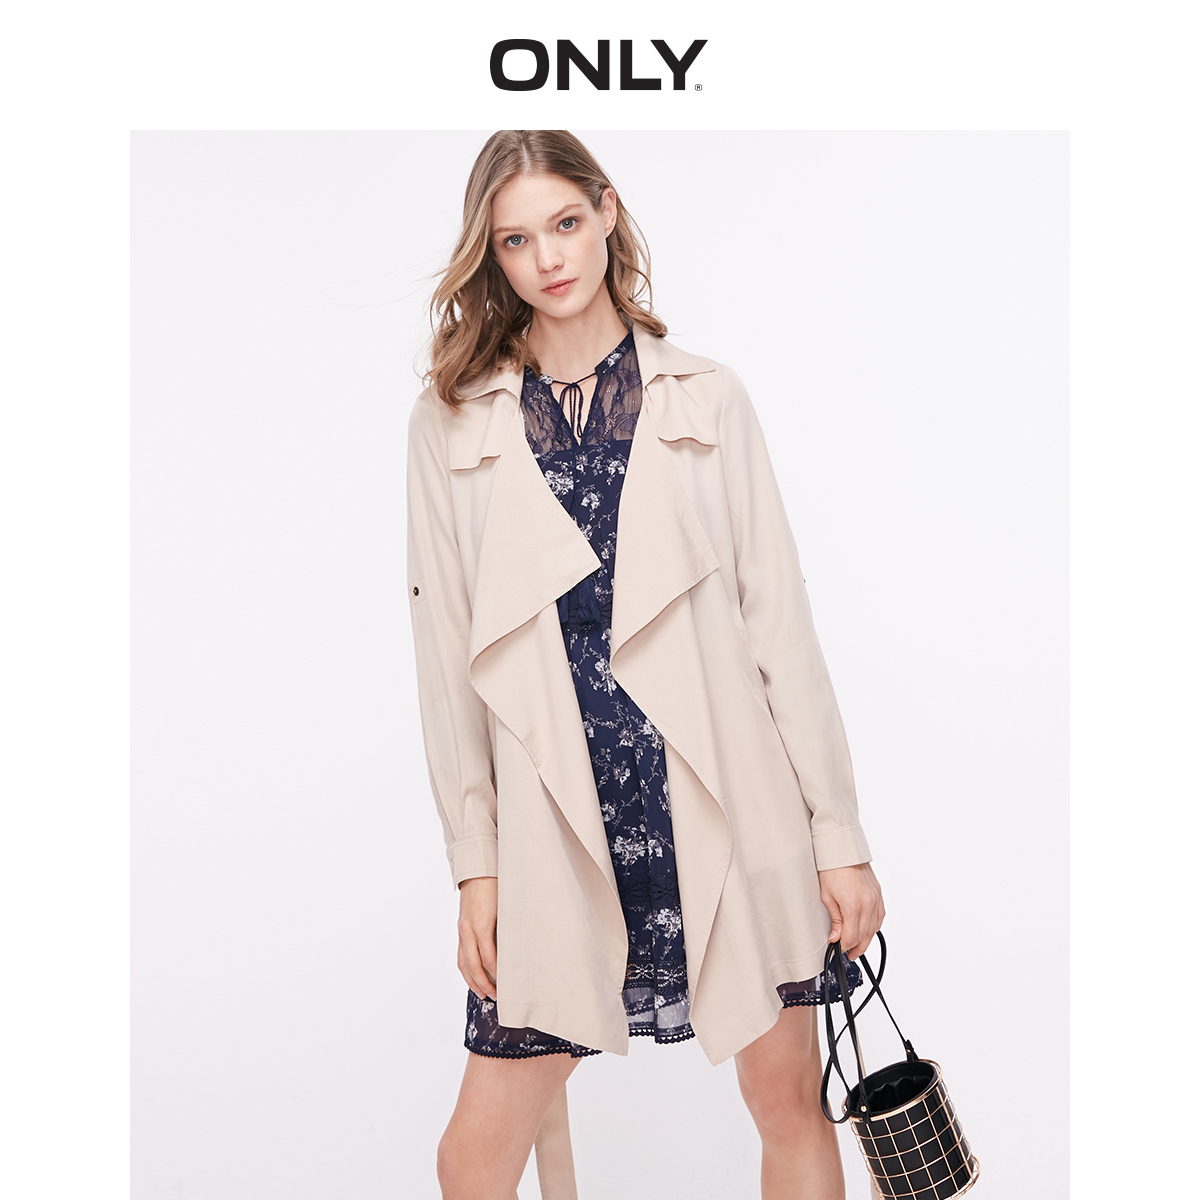 ONLY Women's Women's Mid-length Lace-up Trench Coat | 119136556